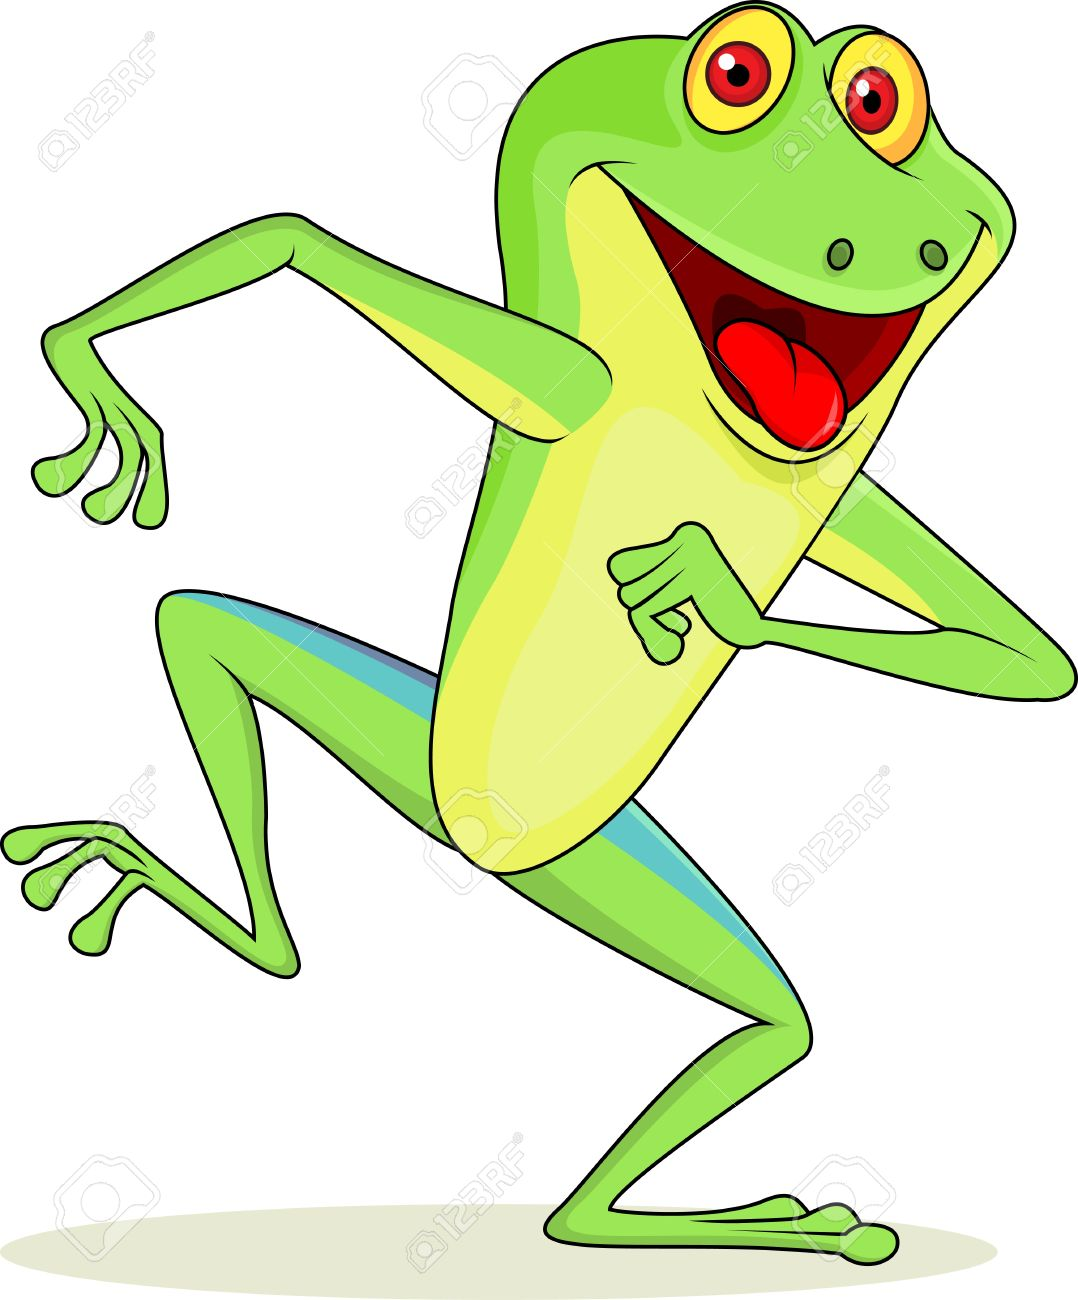 funny frog cartoon royalty free cliparts vectors and stock rh 123rf com Frog Prince Frog Silhouette